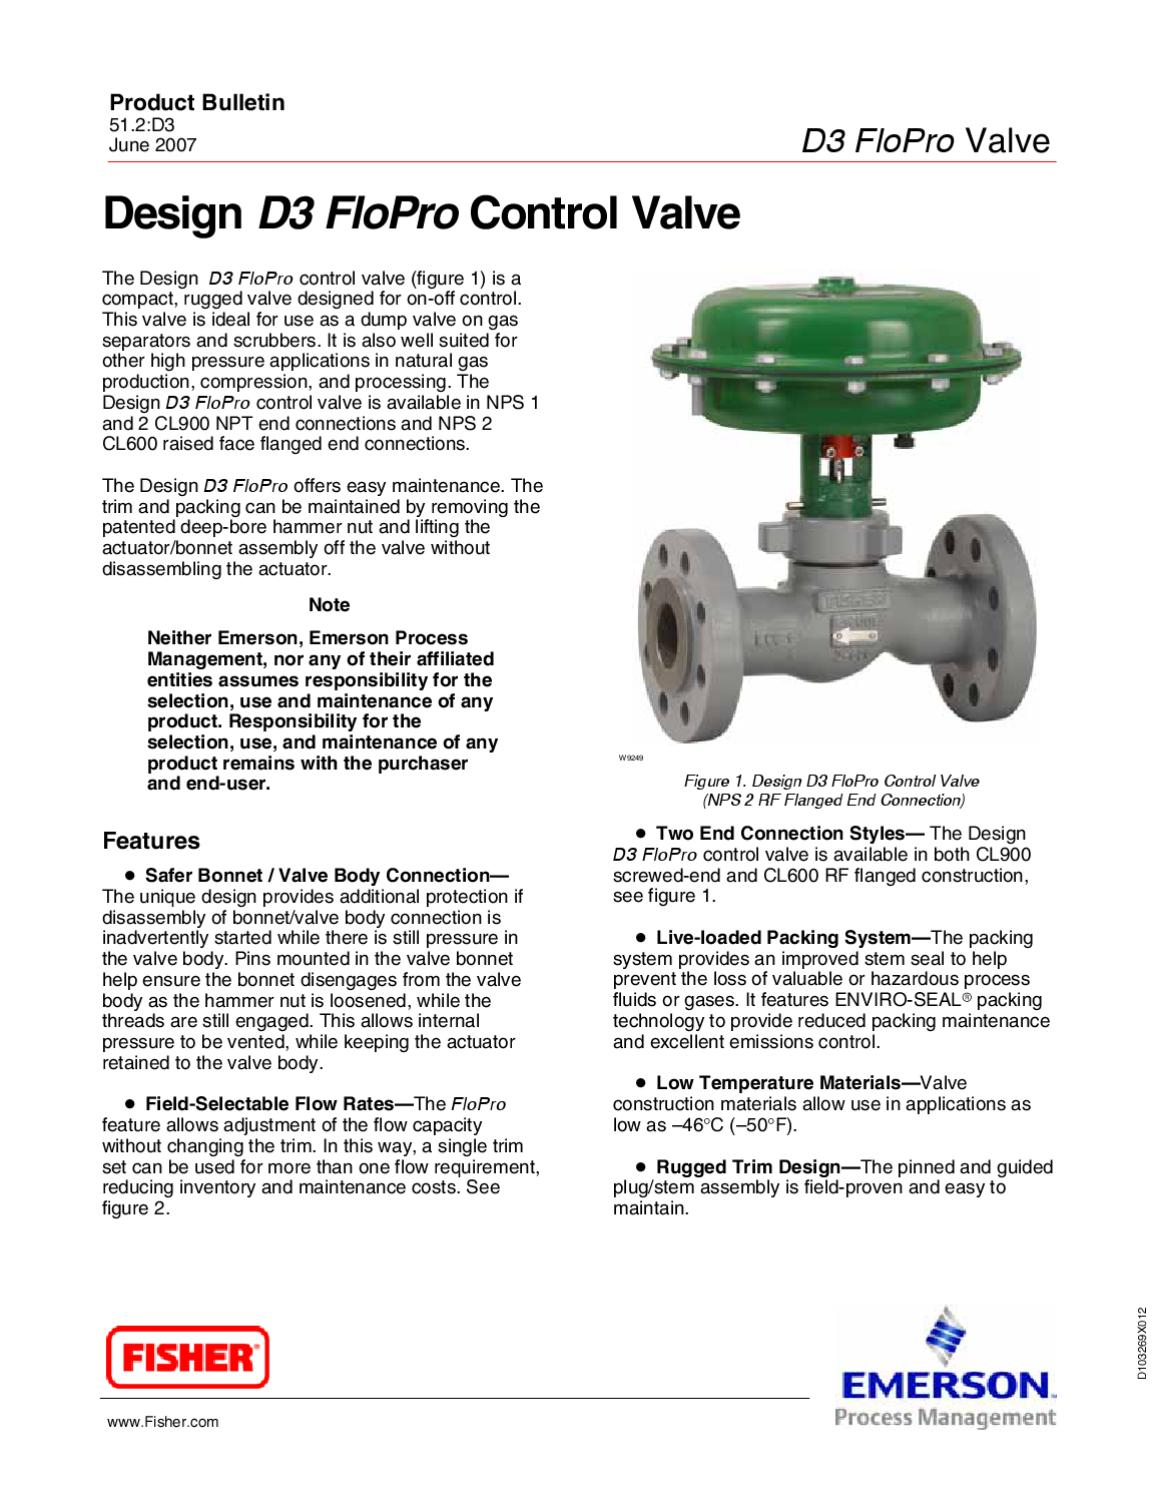 D3 Bulletin by RMC Process Controls & Filtration, Inc  - issuu